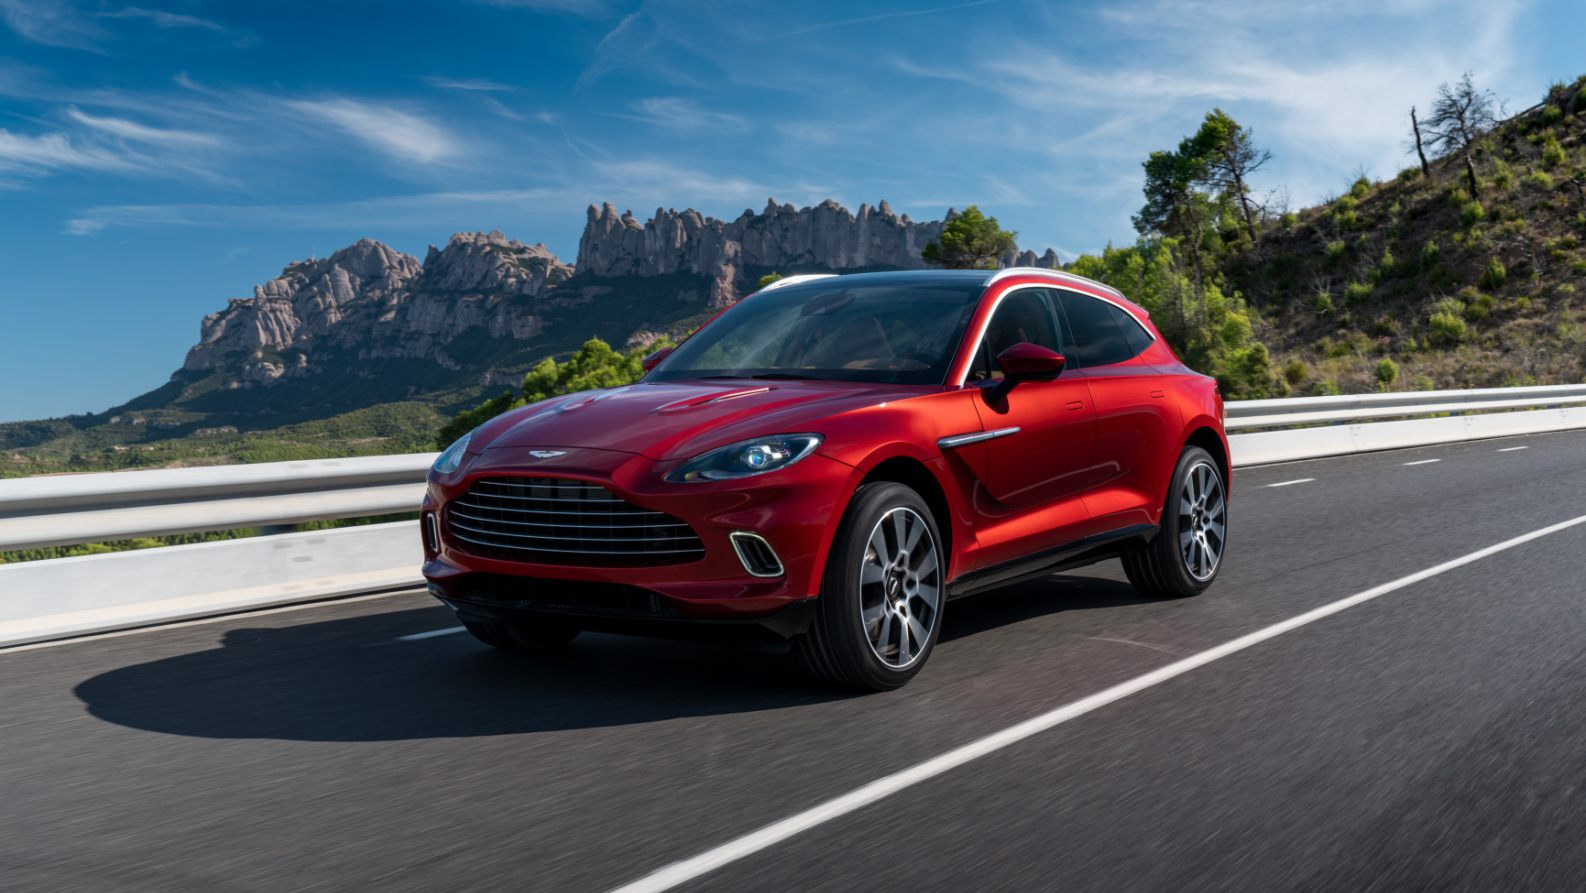 Aston Martin's first SUV, the HK$2.98 million DBX, lands in Hong Kong